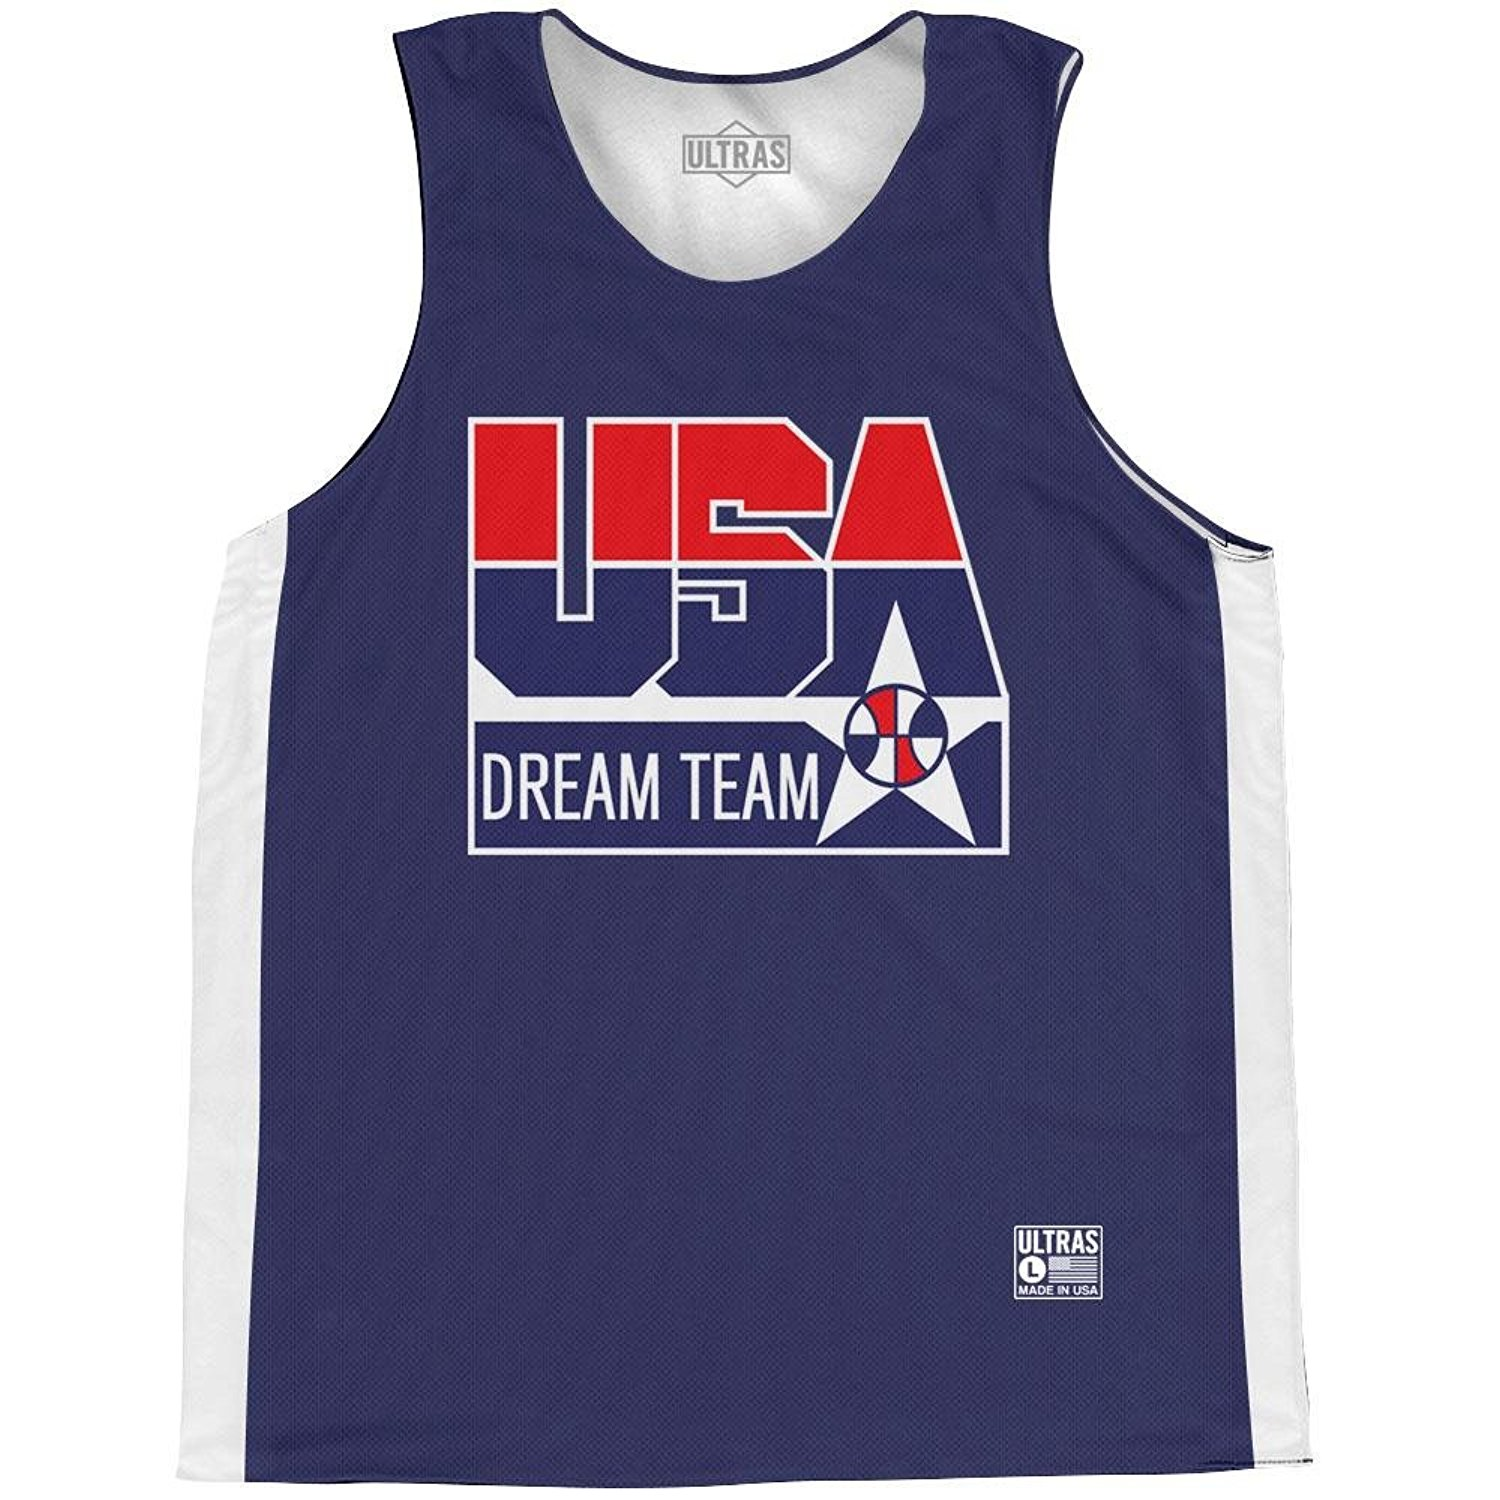 d943cdb5f957 Get Quotations · USA Dream Team Basketball Practice Singlet Jersey